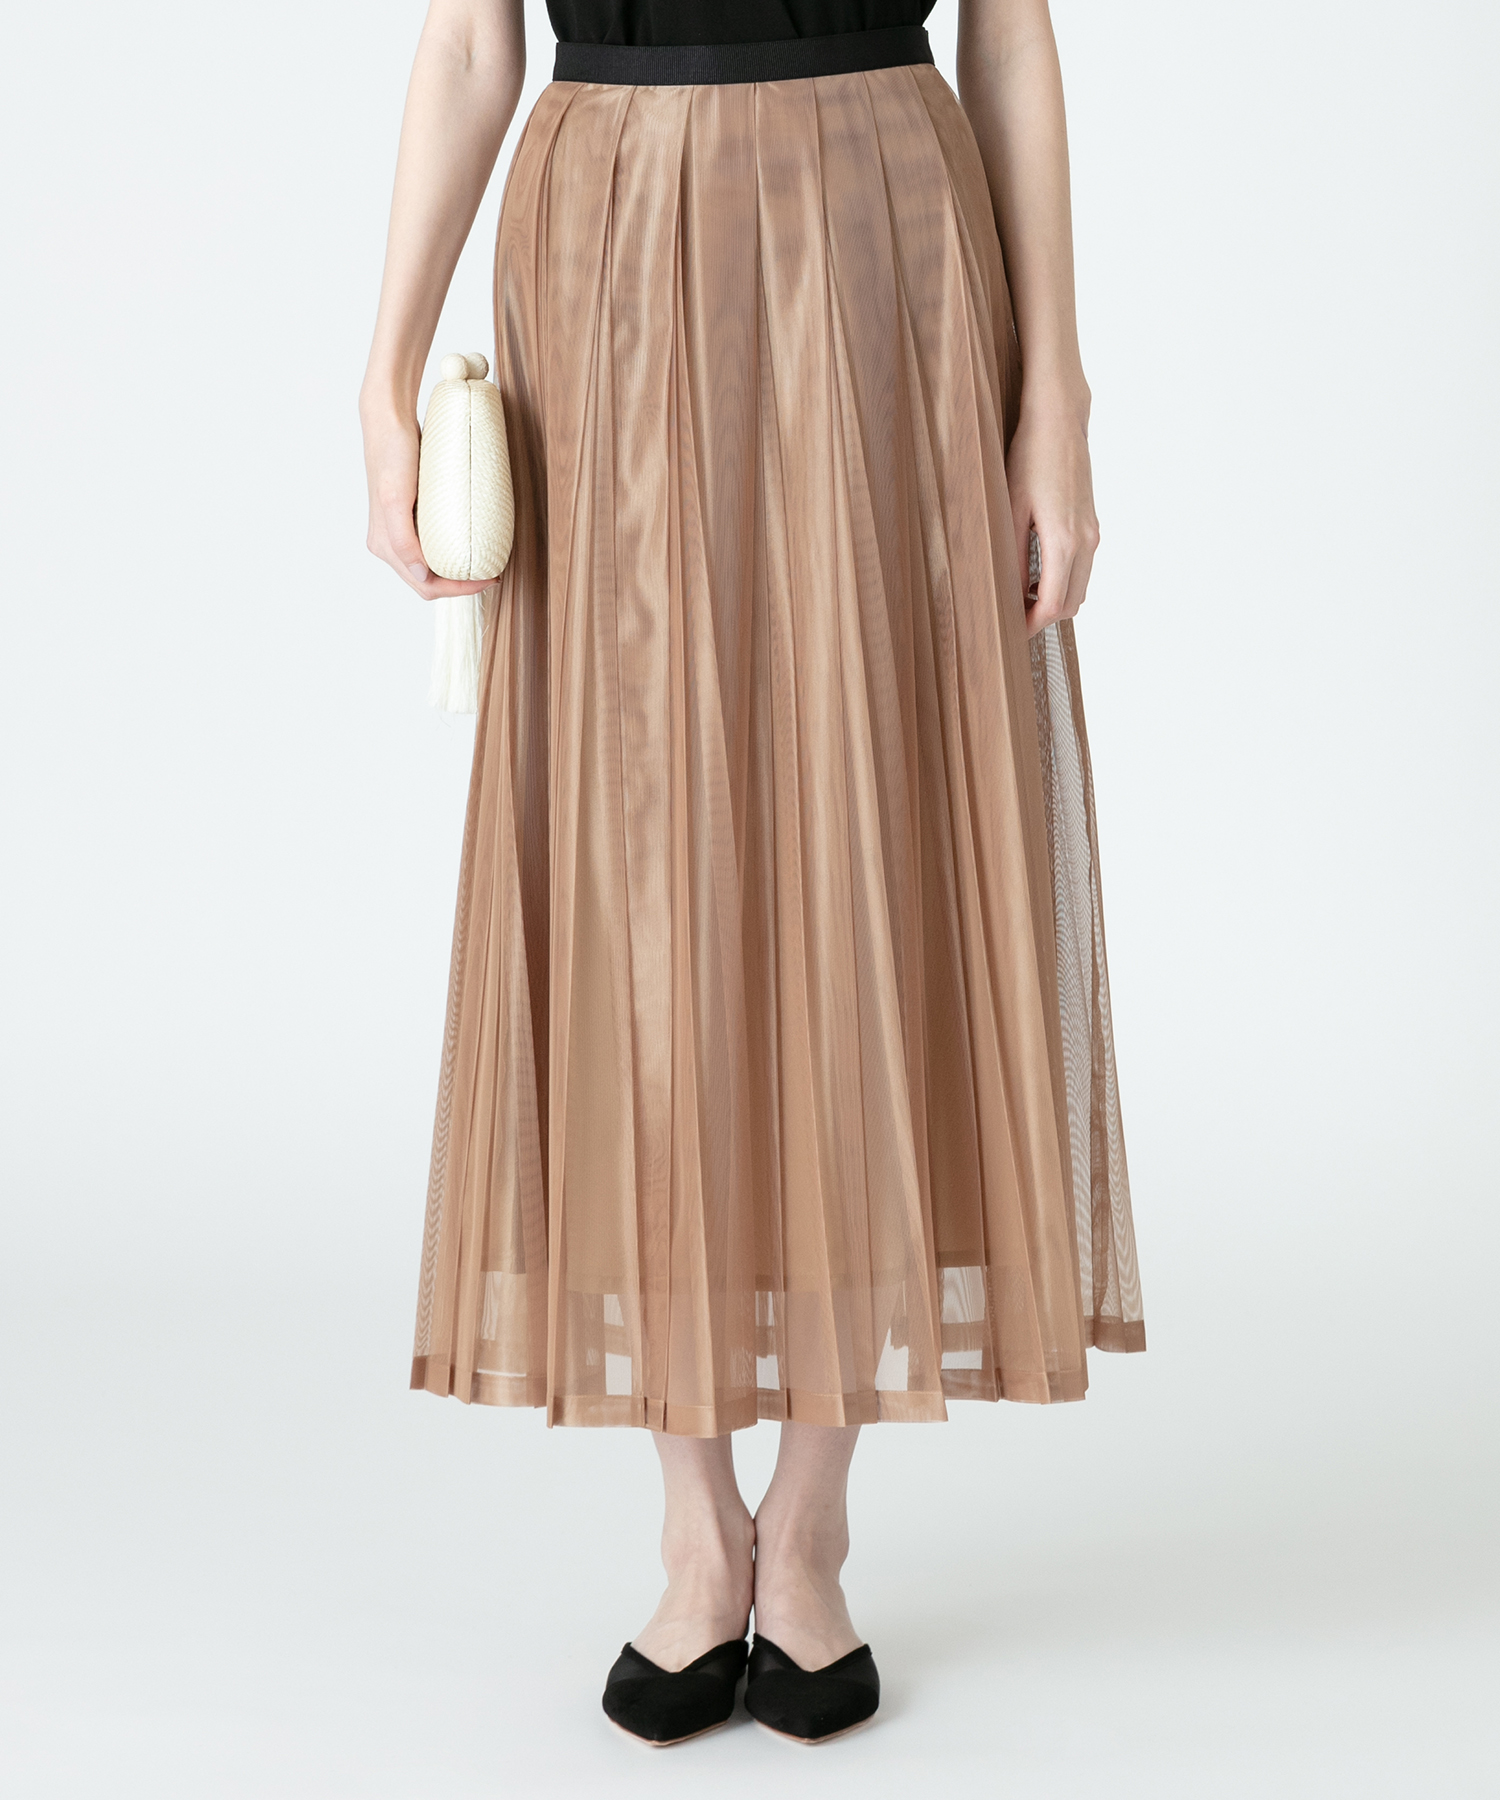 【LOULOU WILLOUGHBY】シャンブレーシアープリーツスカート